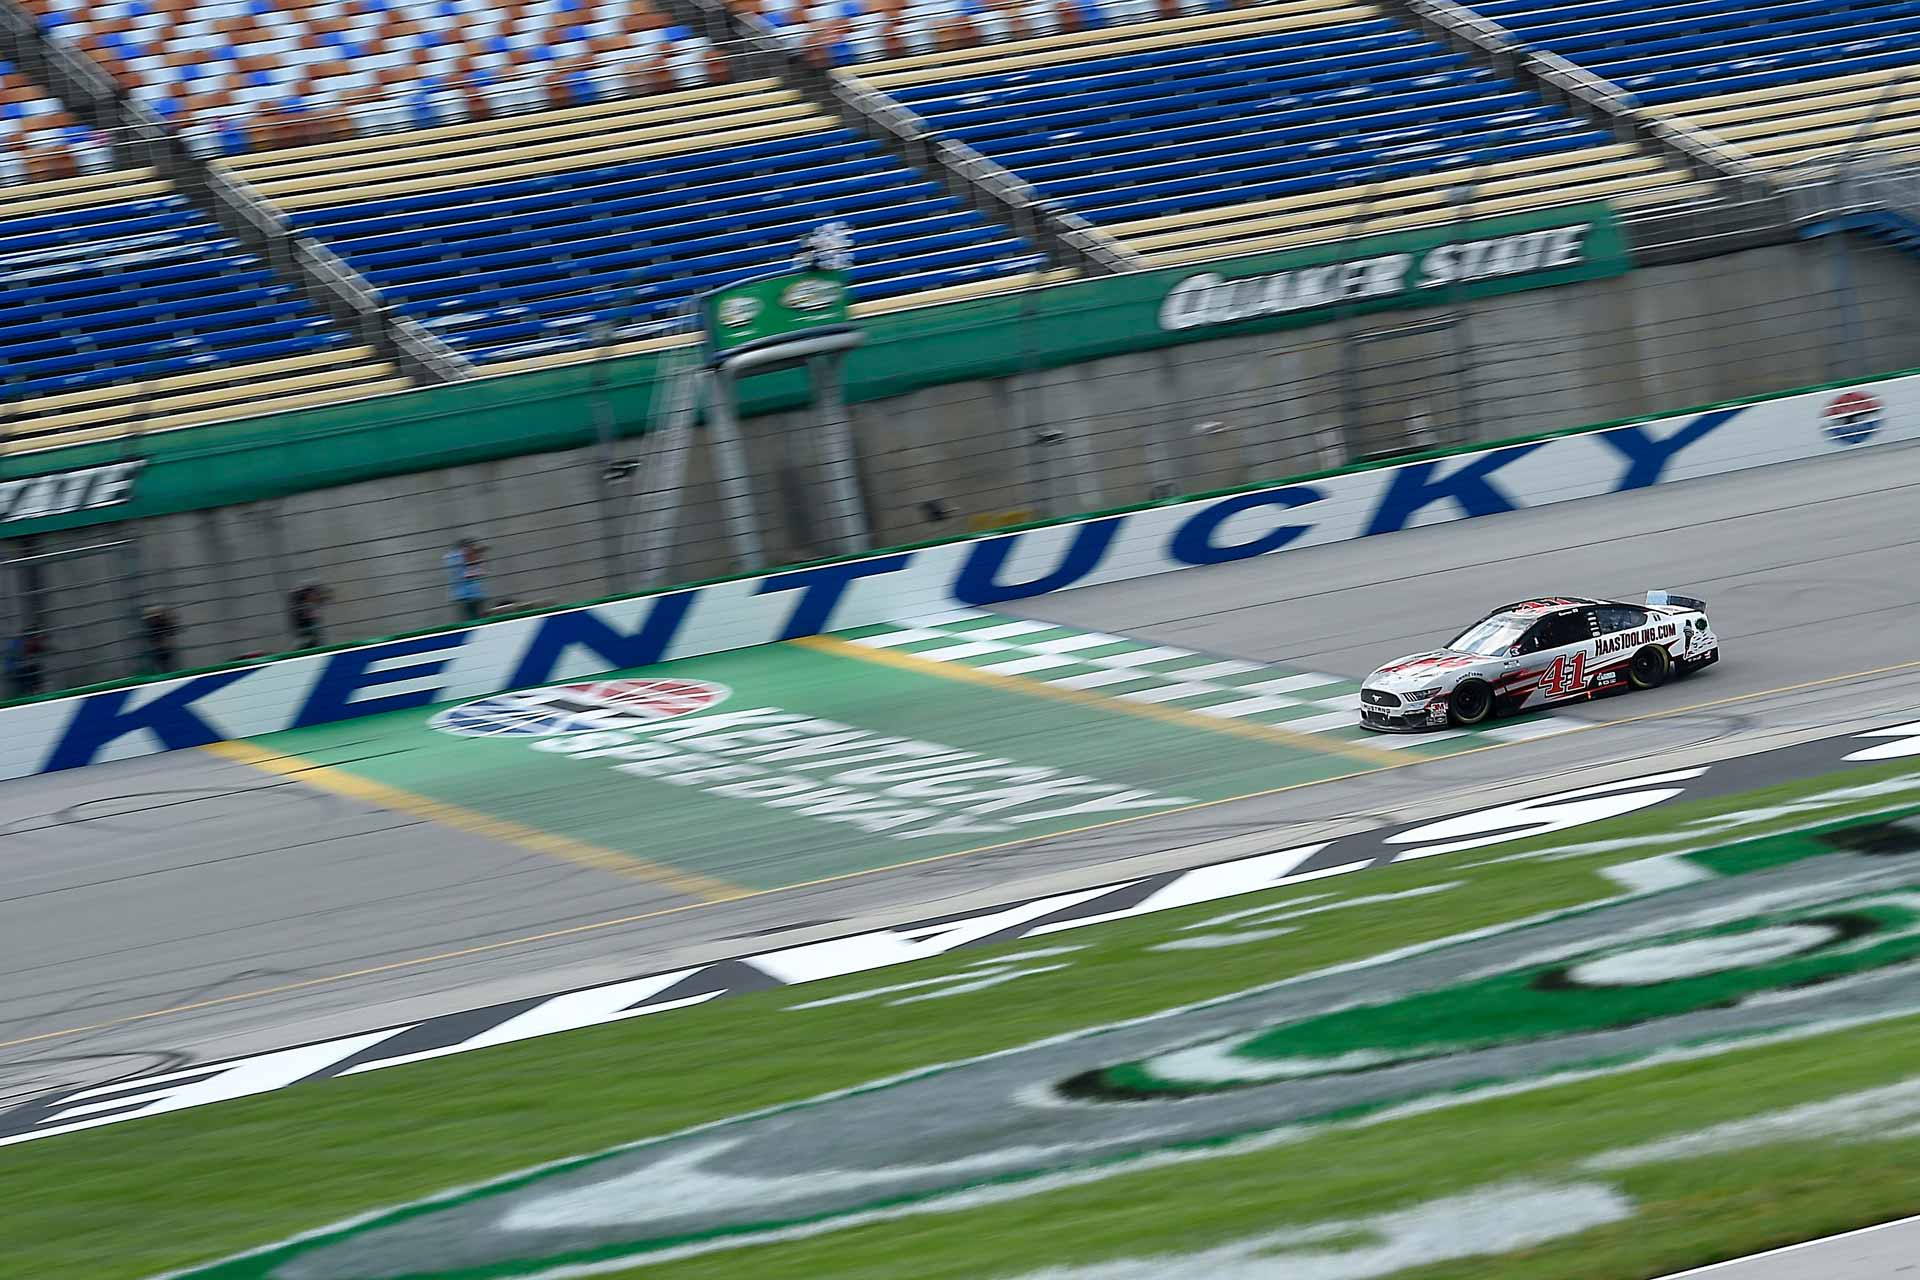 Cole Custer crosses the finish line to earn his first career win in the NASCAR Cup Series.